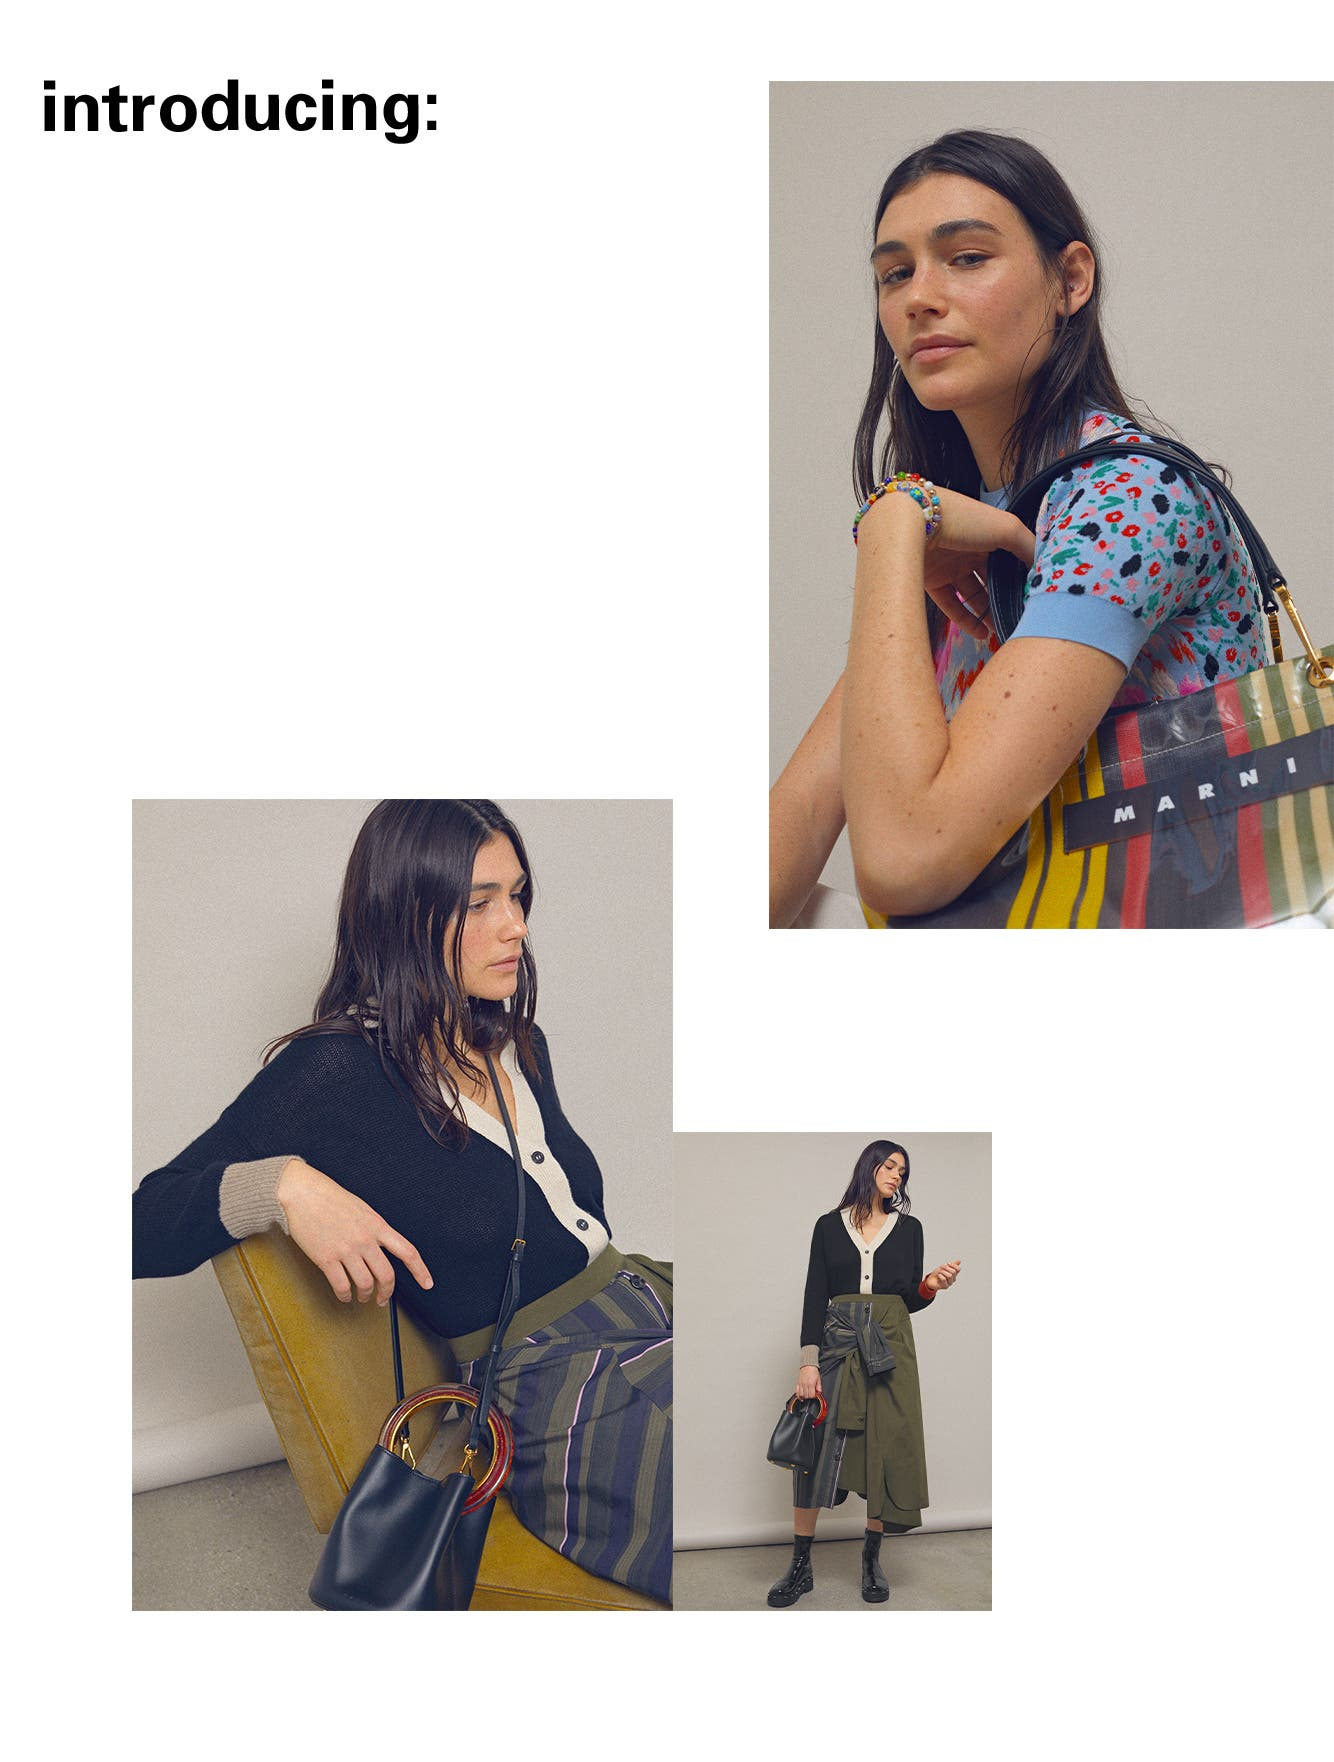 Introducing Marni clothing and accessories.